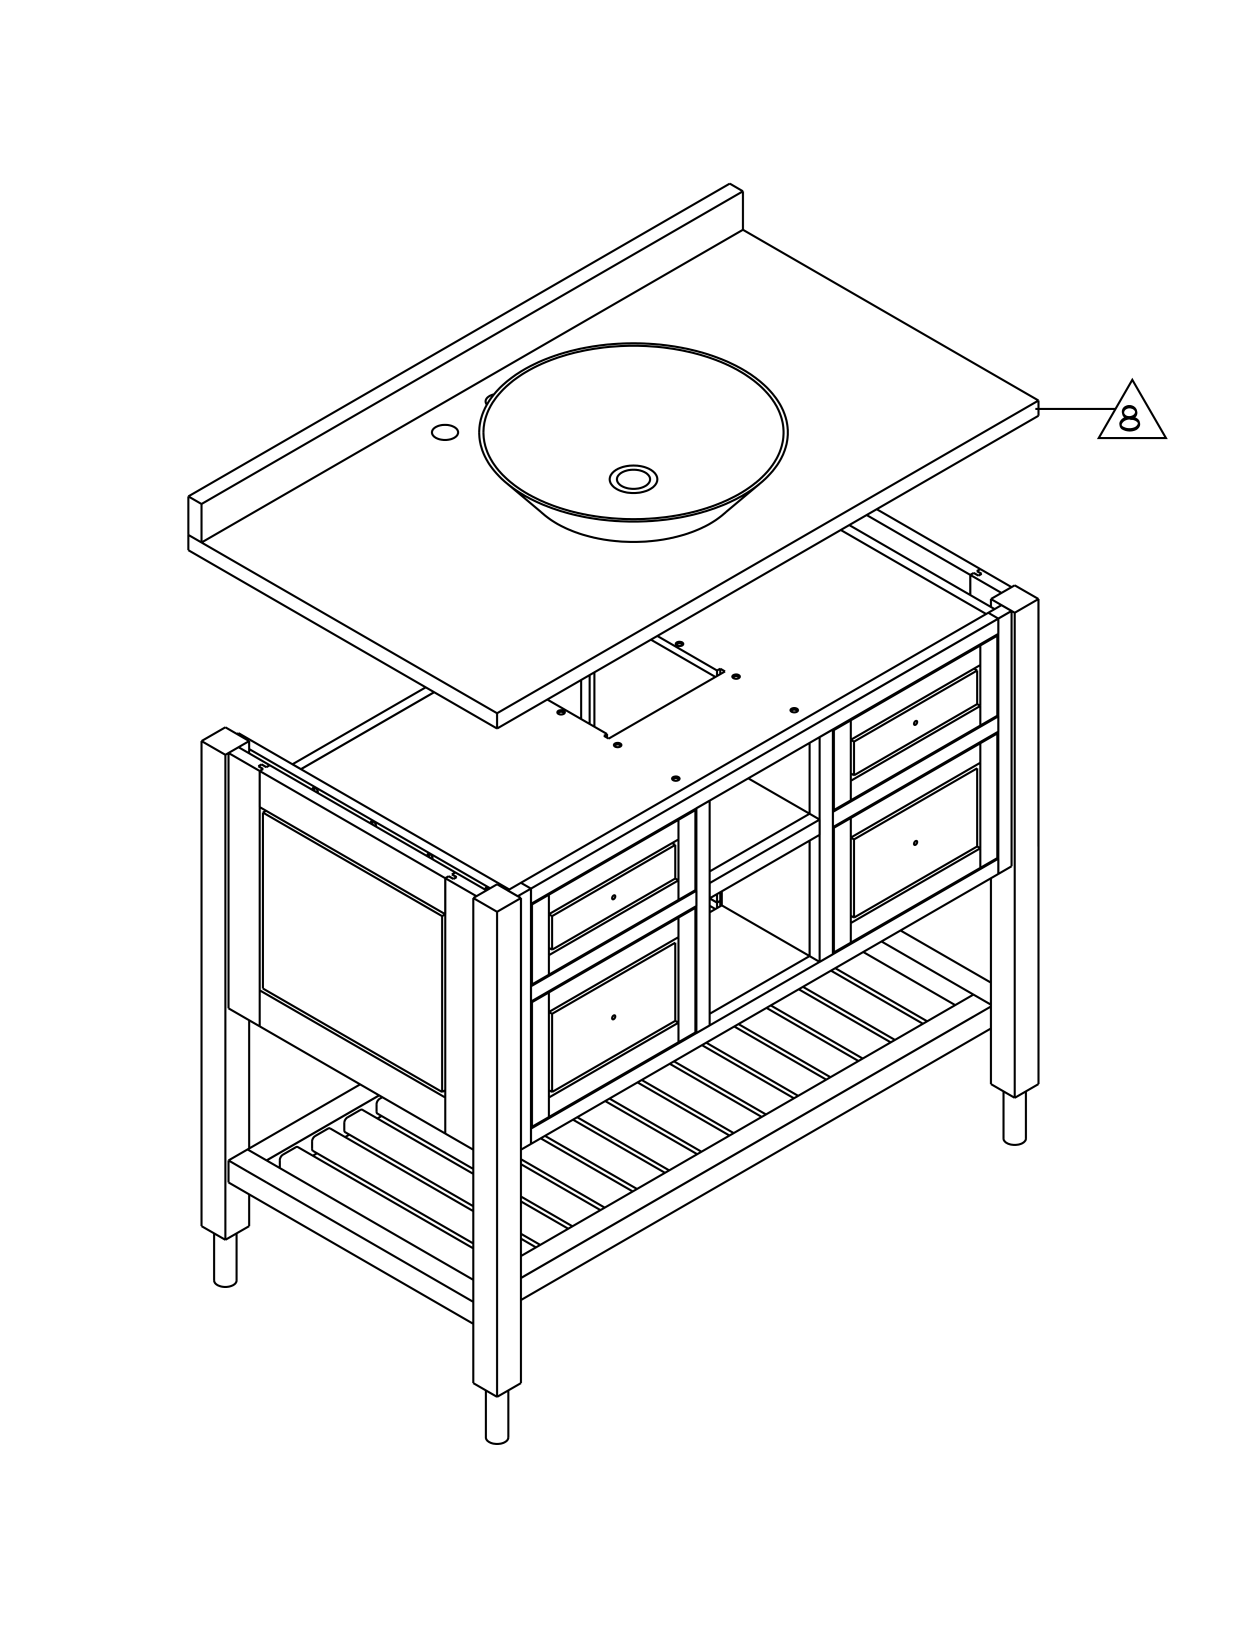 Furniture Assembly Drawings Spa Vanity Assembly Drawing